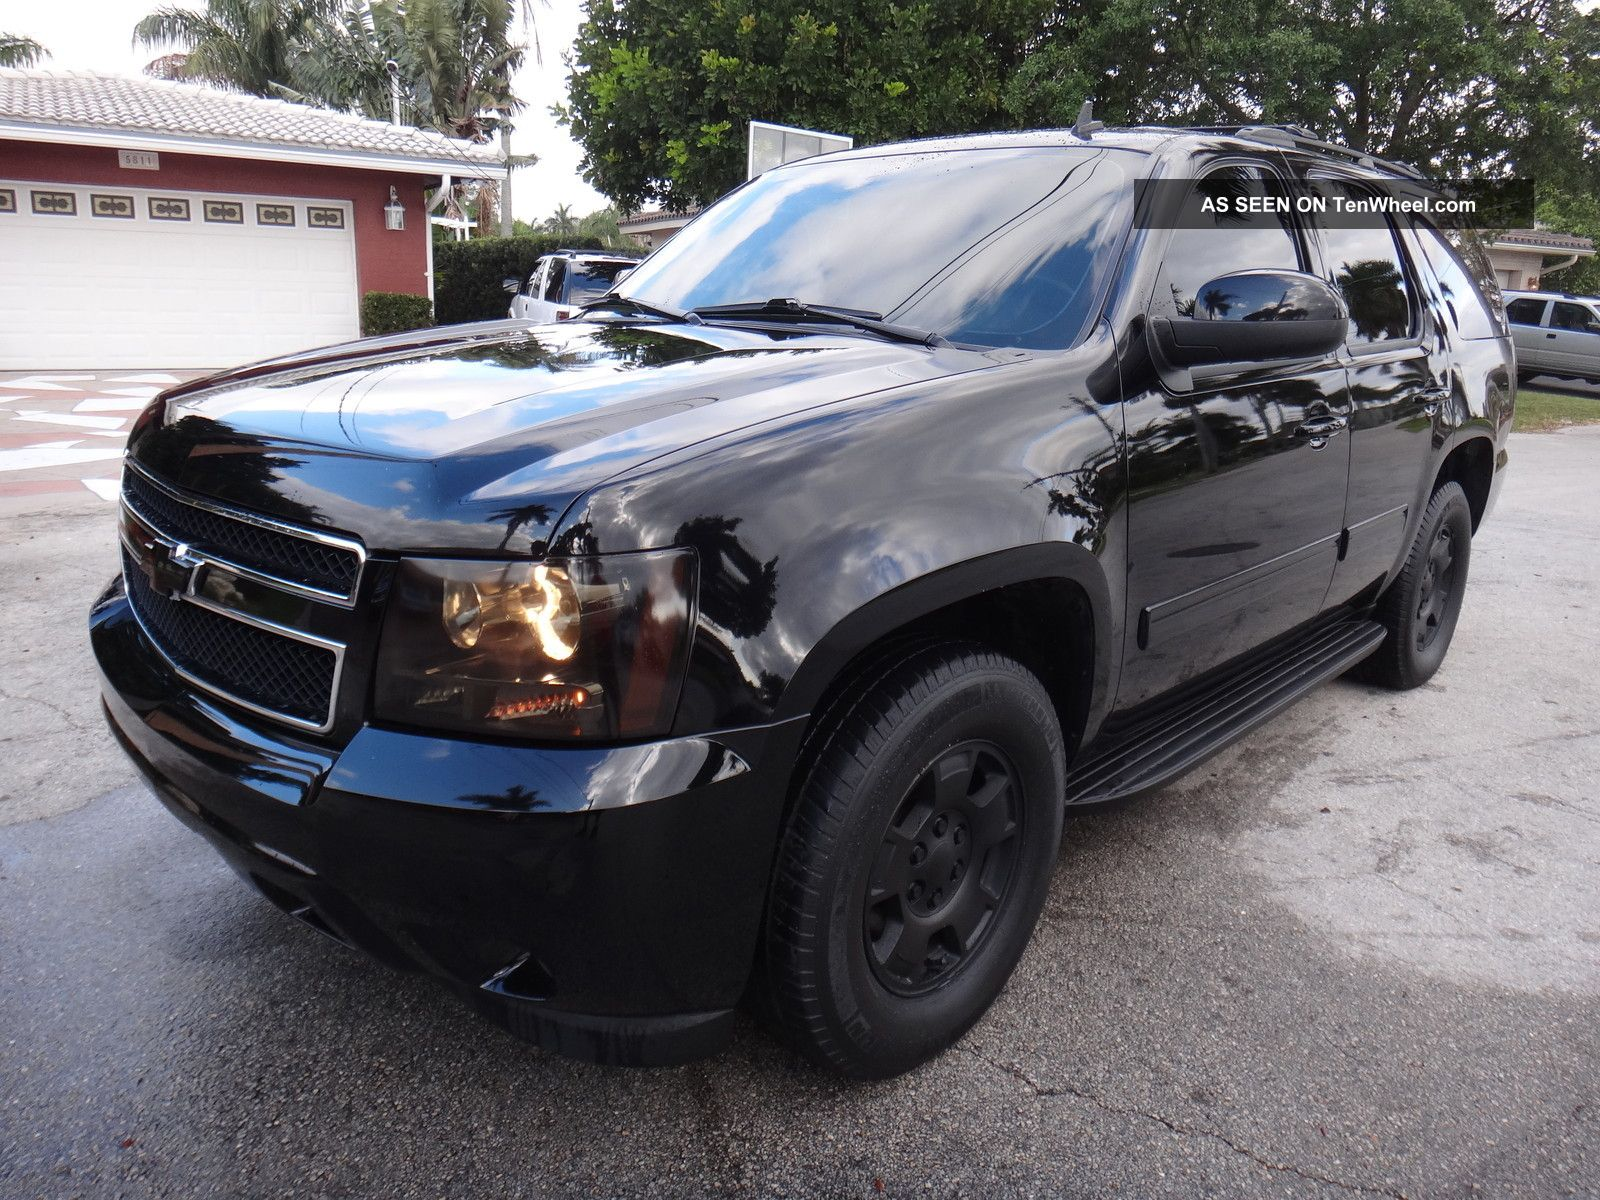 2010 chevrolet tahoe blacked out dvd players show truck fl suv hot truck. Black Bedroom Furniture Sets. Home Design Ideas